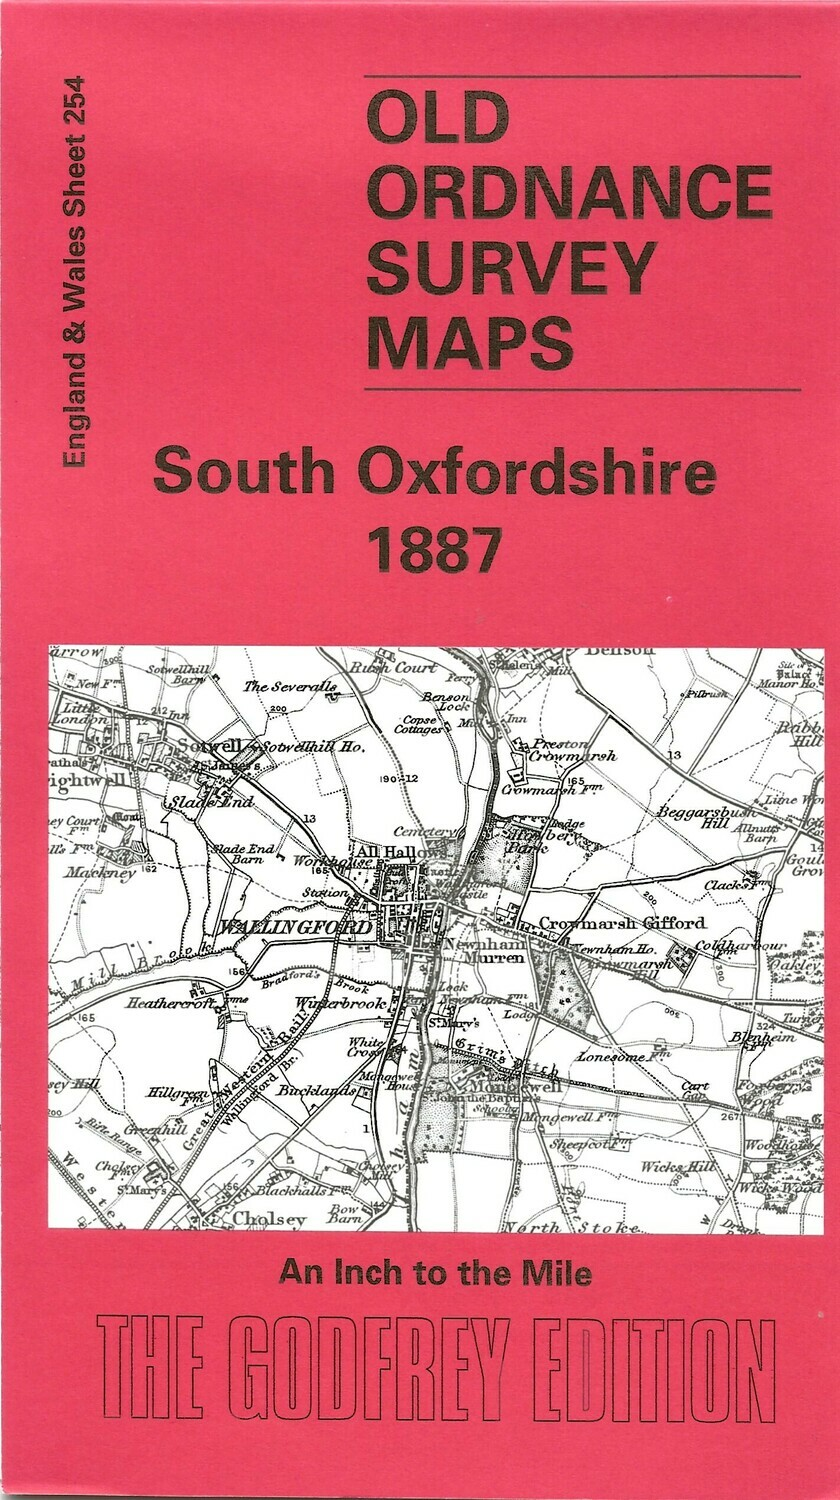 South Oxfordshire 1887